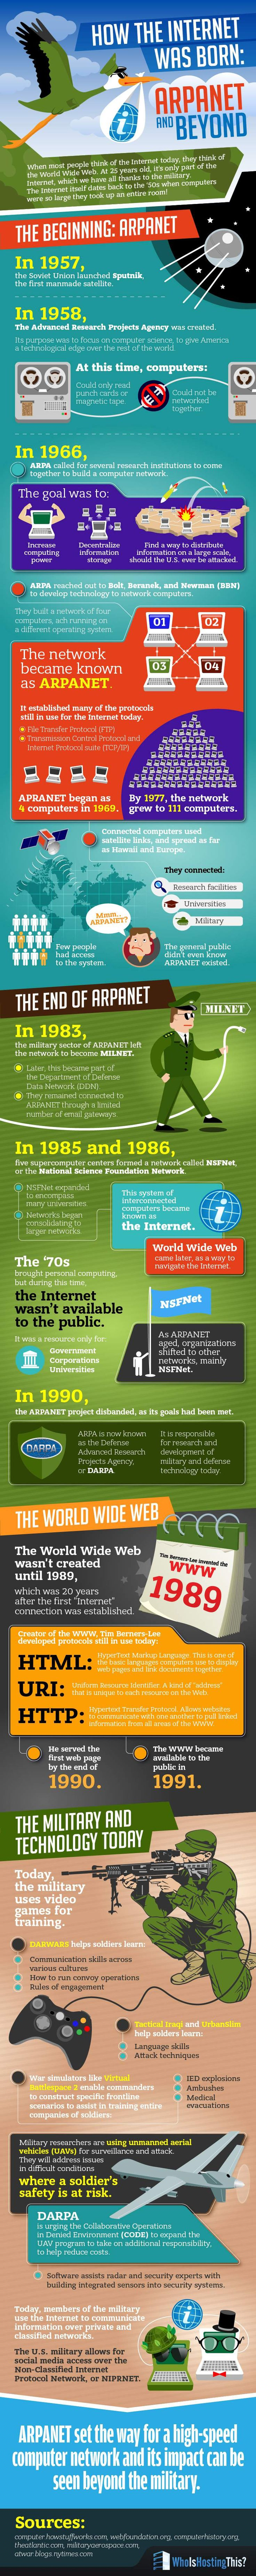 How the Internet Was Born: ARPANET and Beyond #infographic #Internet #History